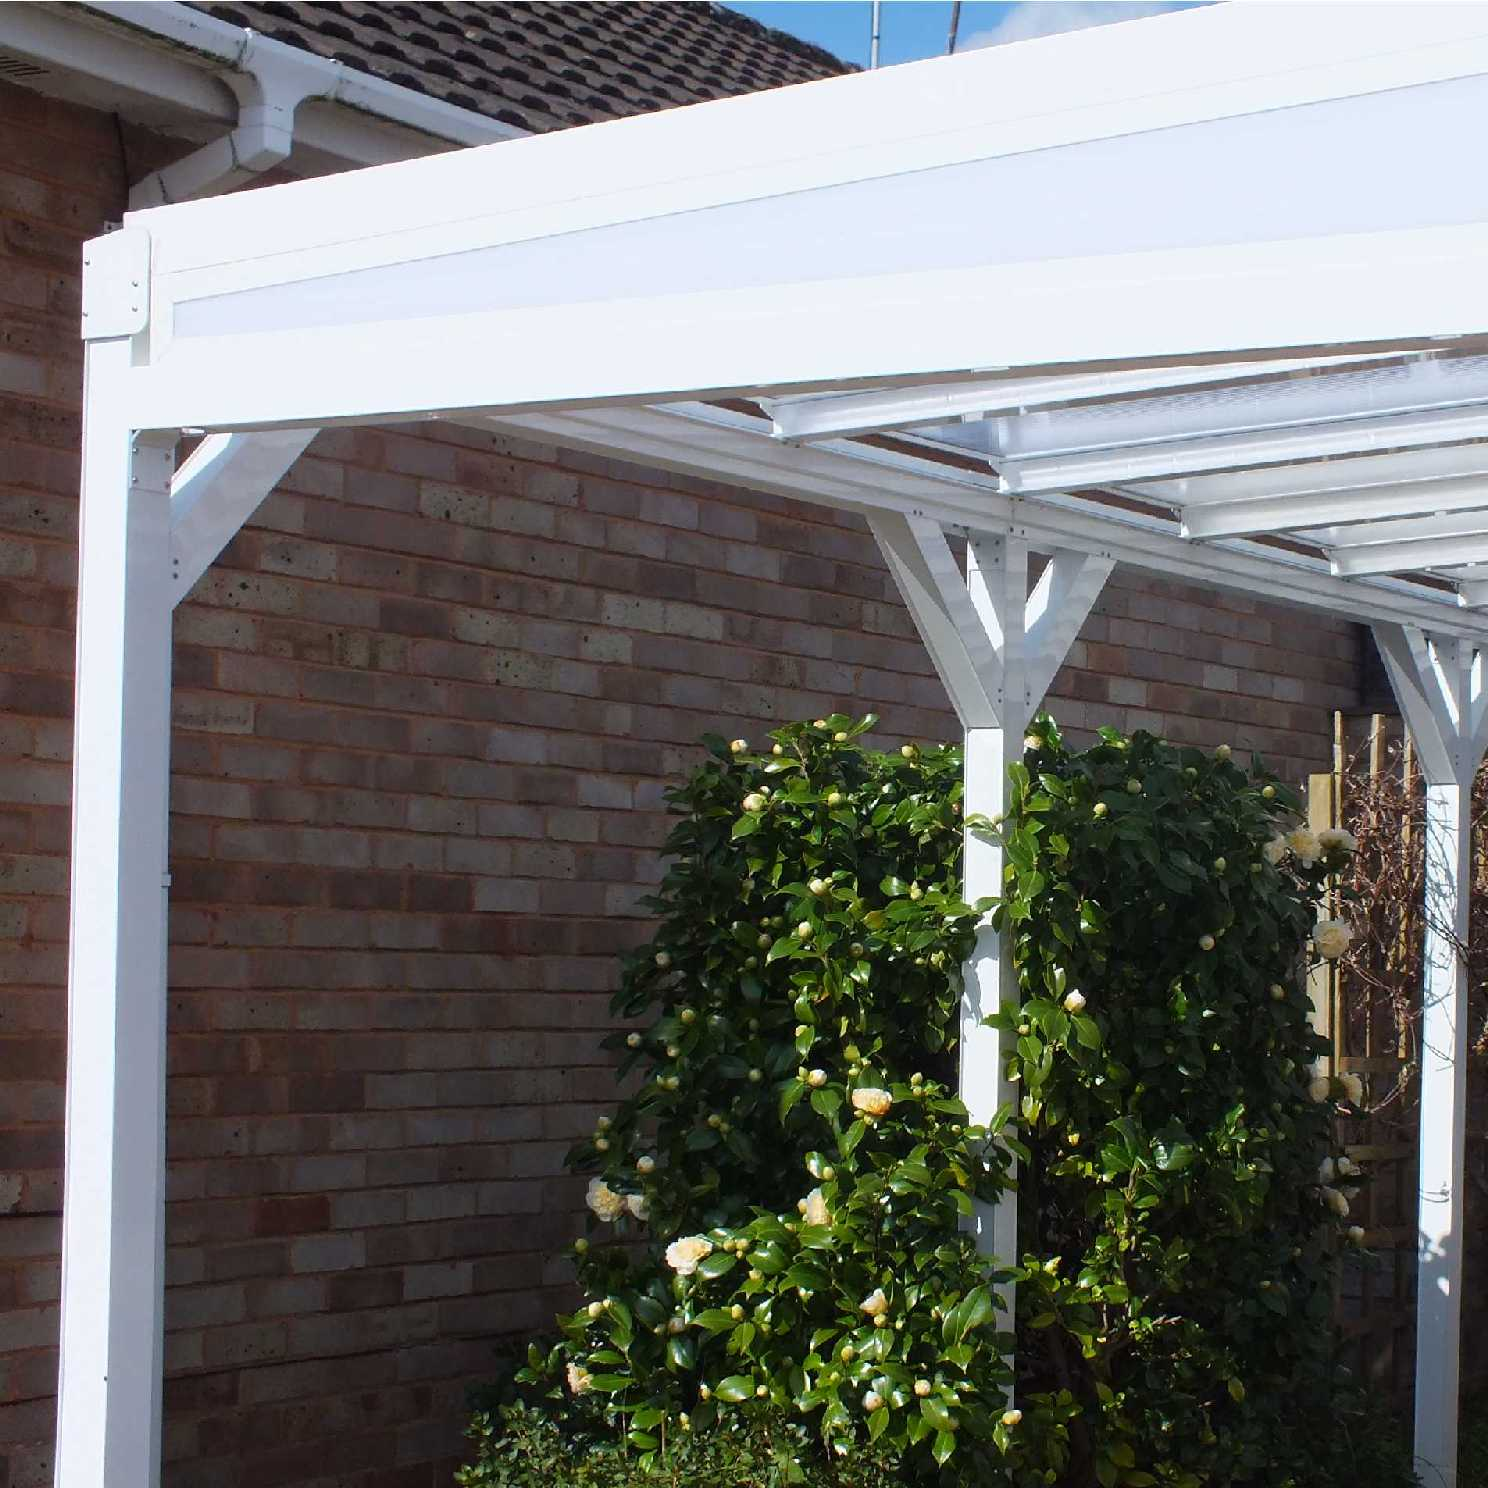 Omega Smart White Lean-To Canopy with 16mm Polycarbonate Glazing - 8.4m (W) x 1.5m (P), (4) Supporting Posts from Omega Build